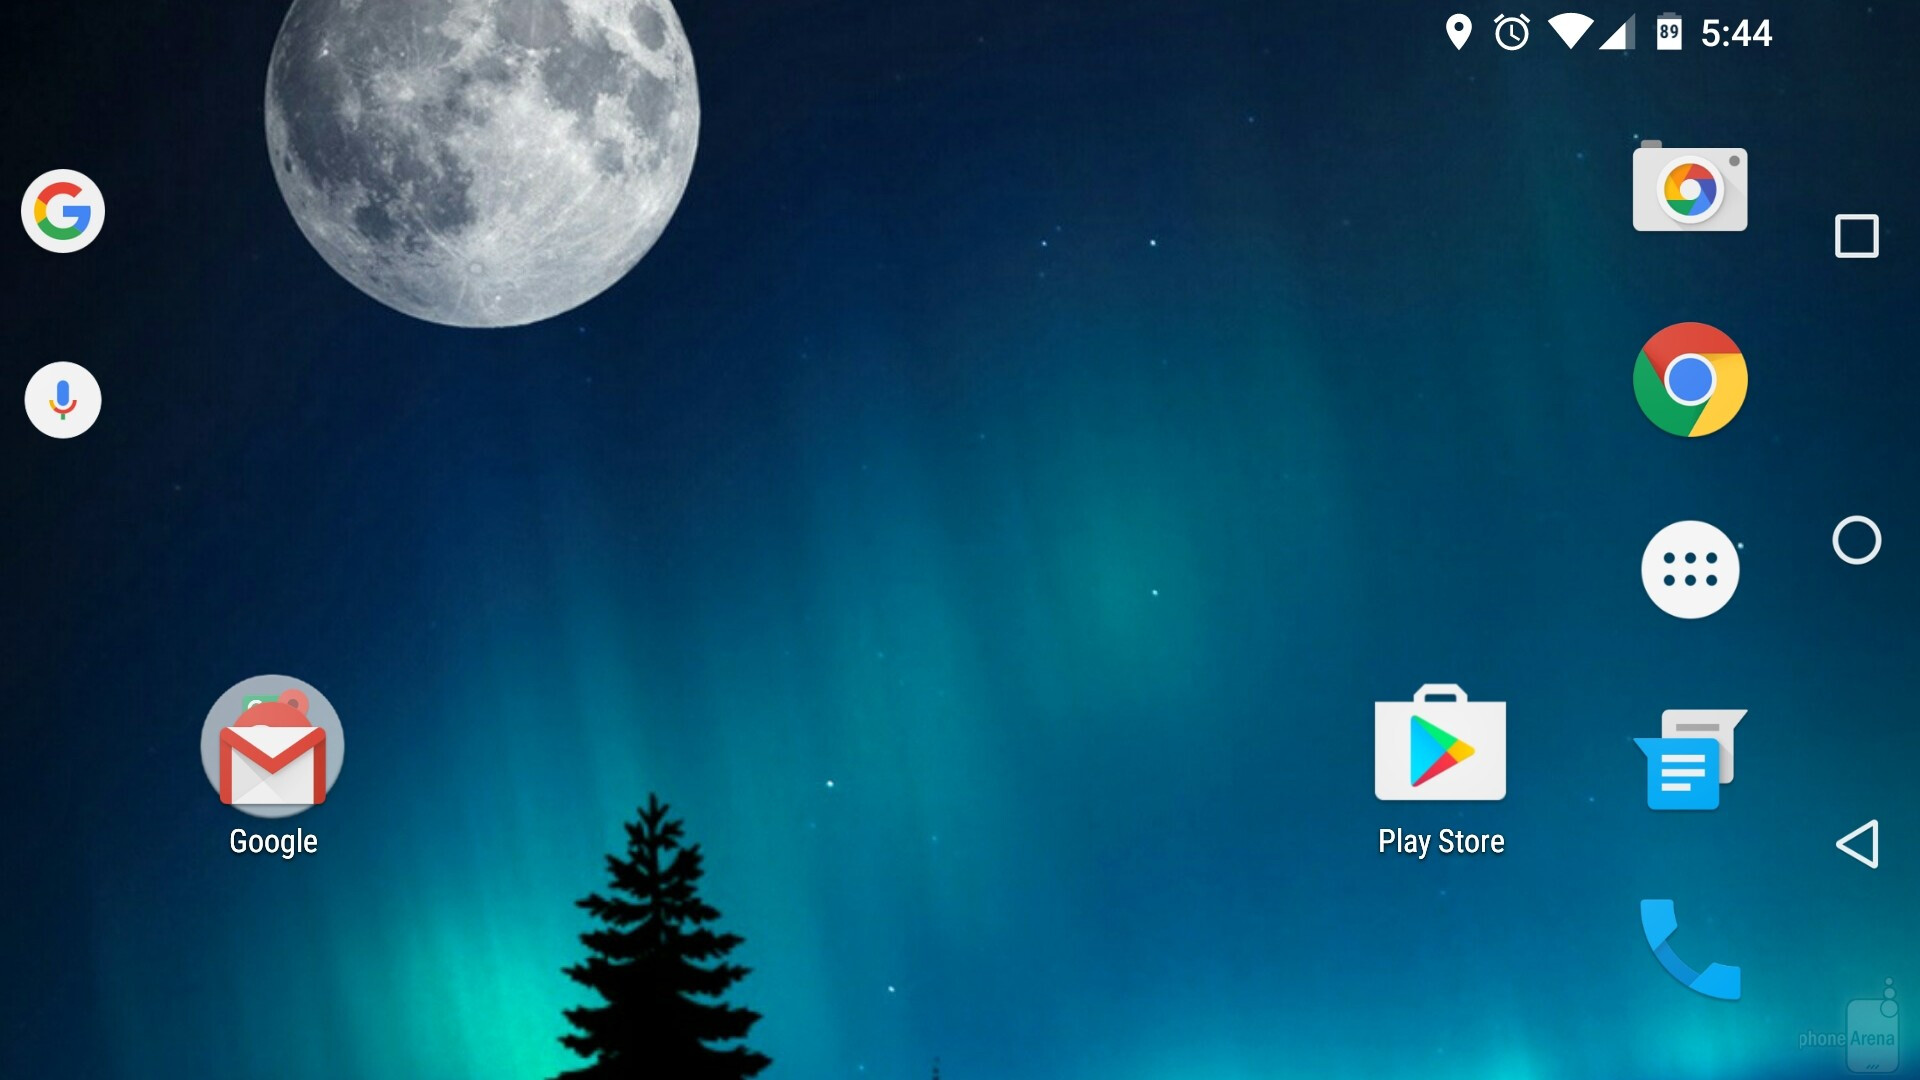 home screen will look something like this whenever you rotate the phone to the left or right image from how to enable landscape mode on your android